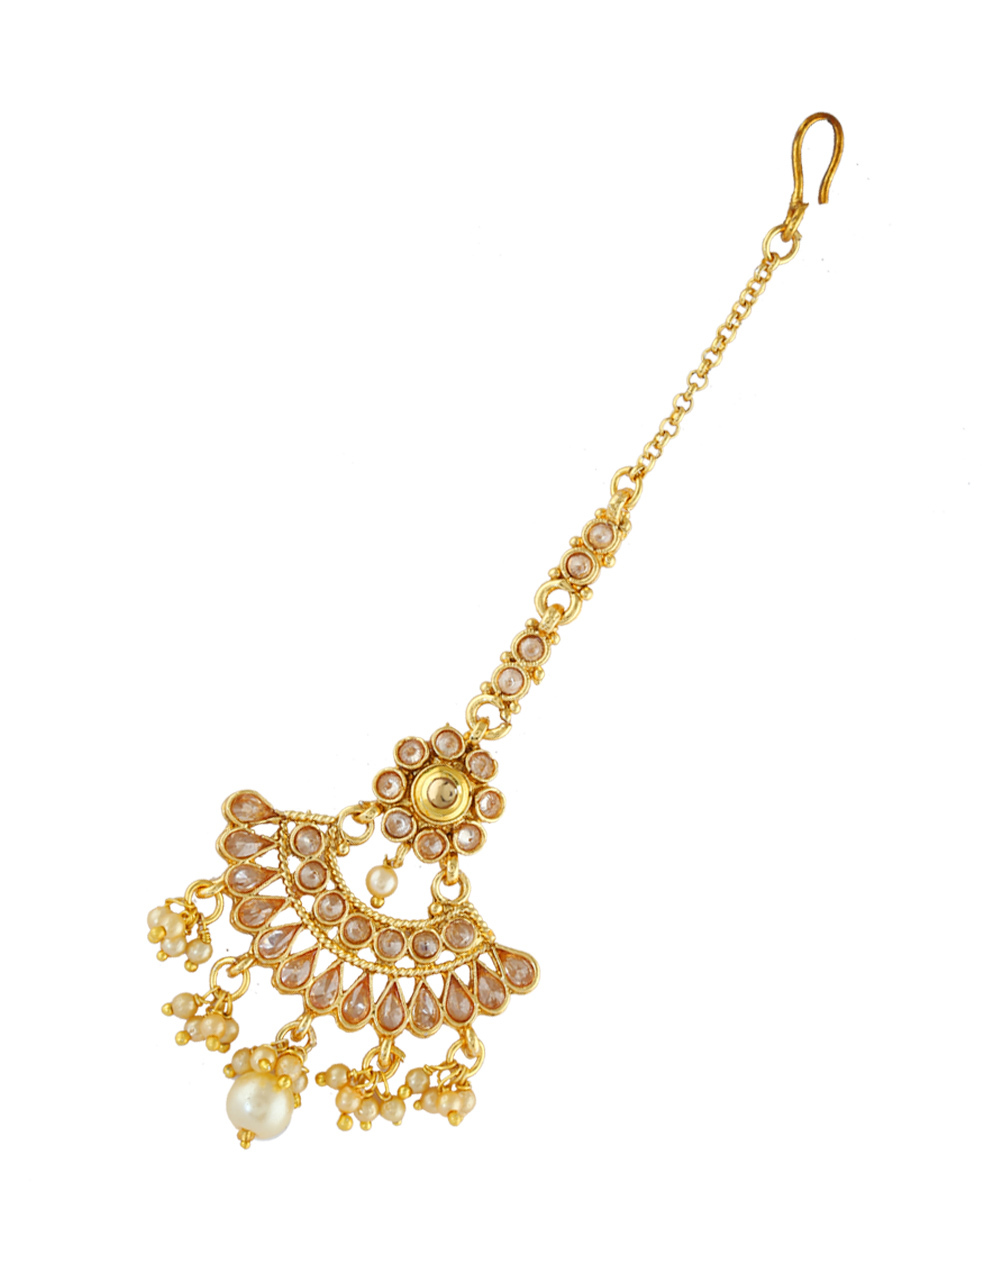 Fancy Gold Finish Styled With Pearls Beads Mang Tika Jewellery